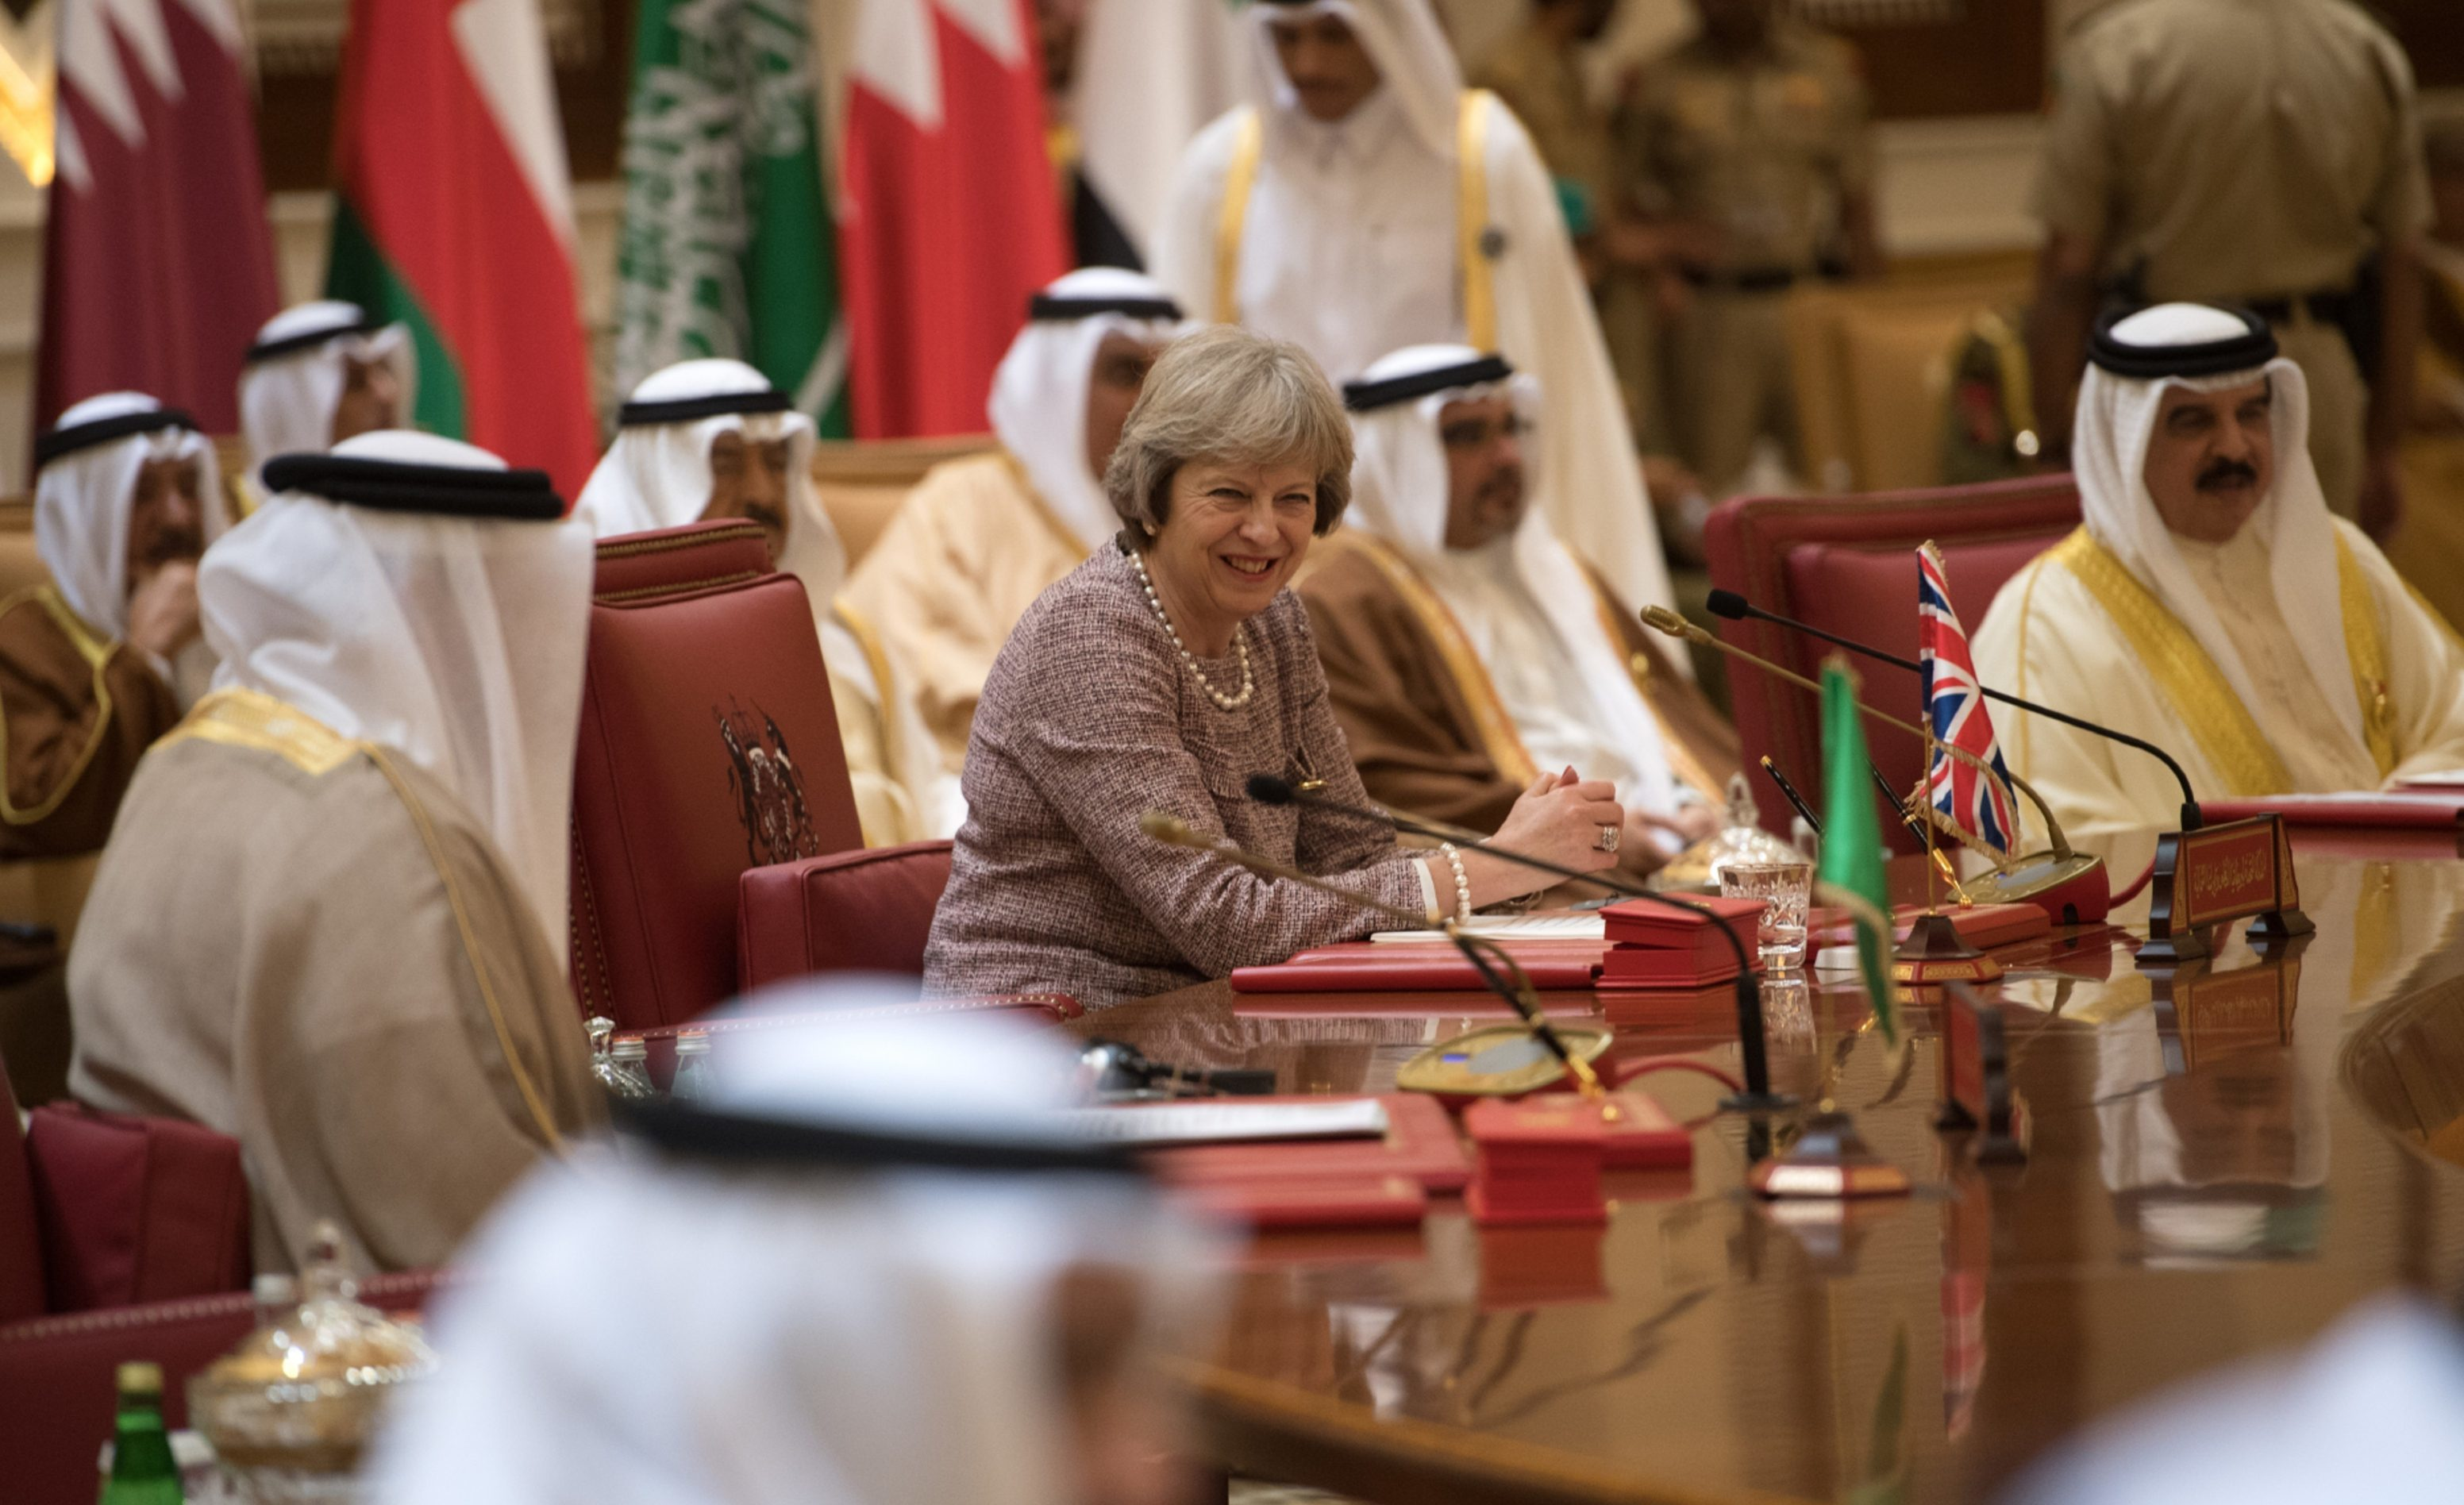 Theresa May at the Gulf Co-operation Council summit in Bahrain.